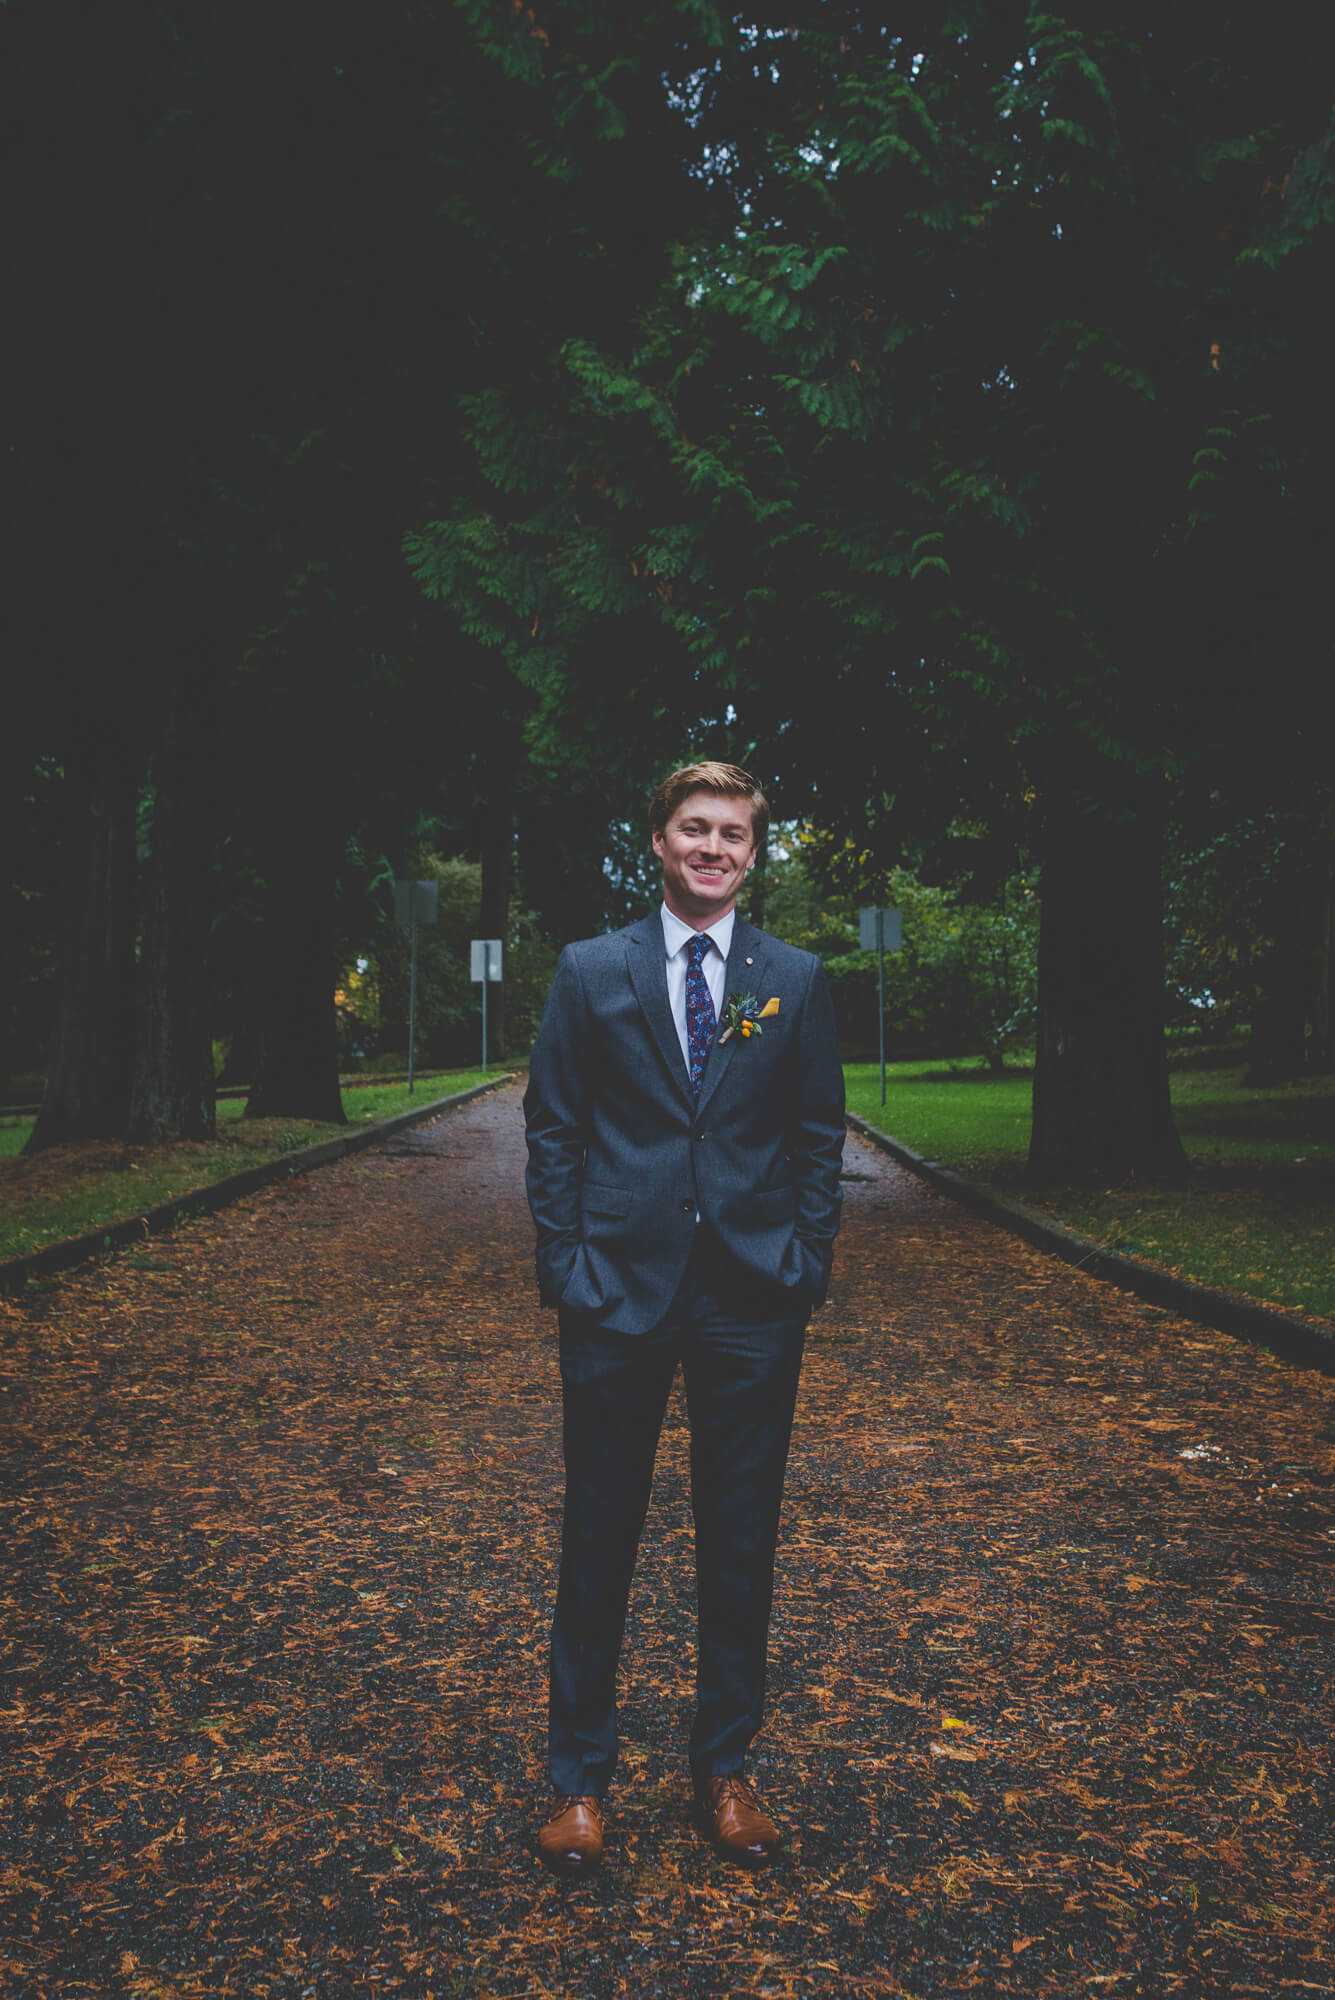 groom smiling during wedding portraits in Queens Park